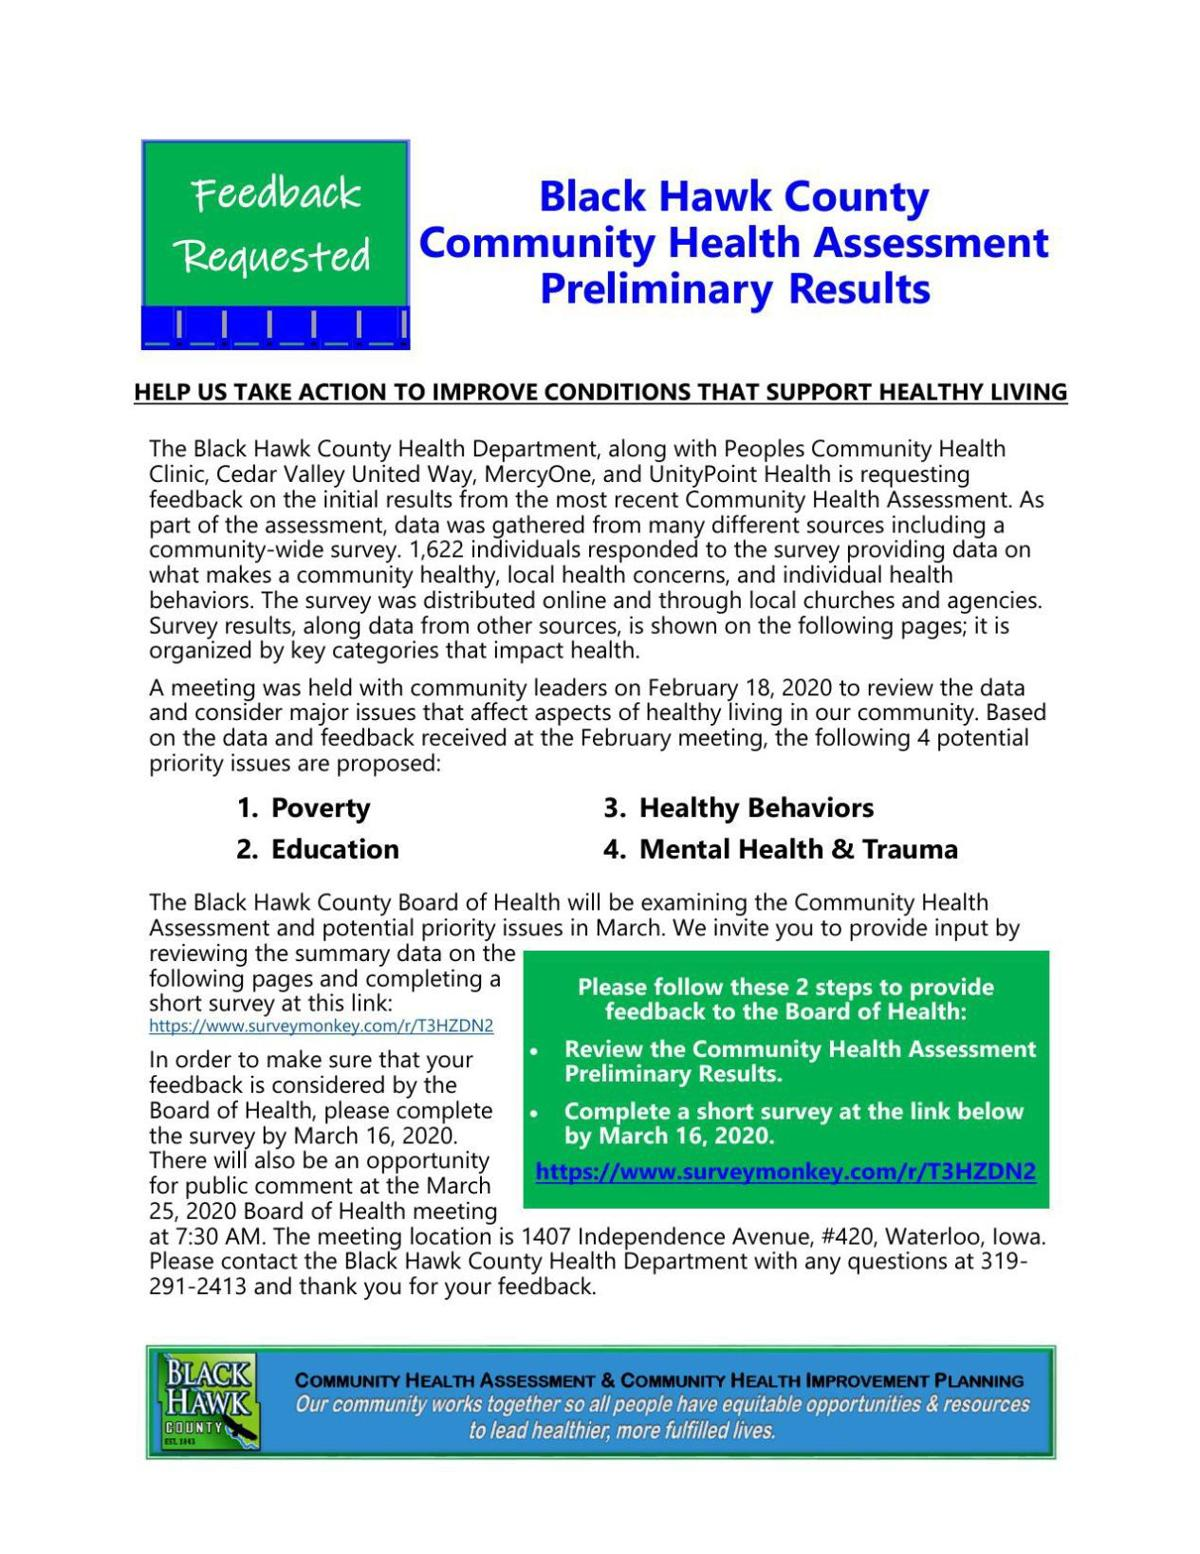 Black Hawk County Health Needs Assessment Page 8